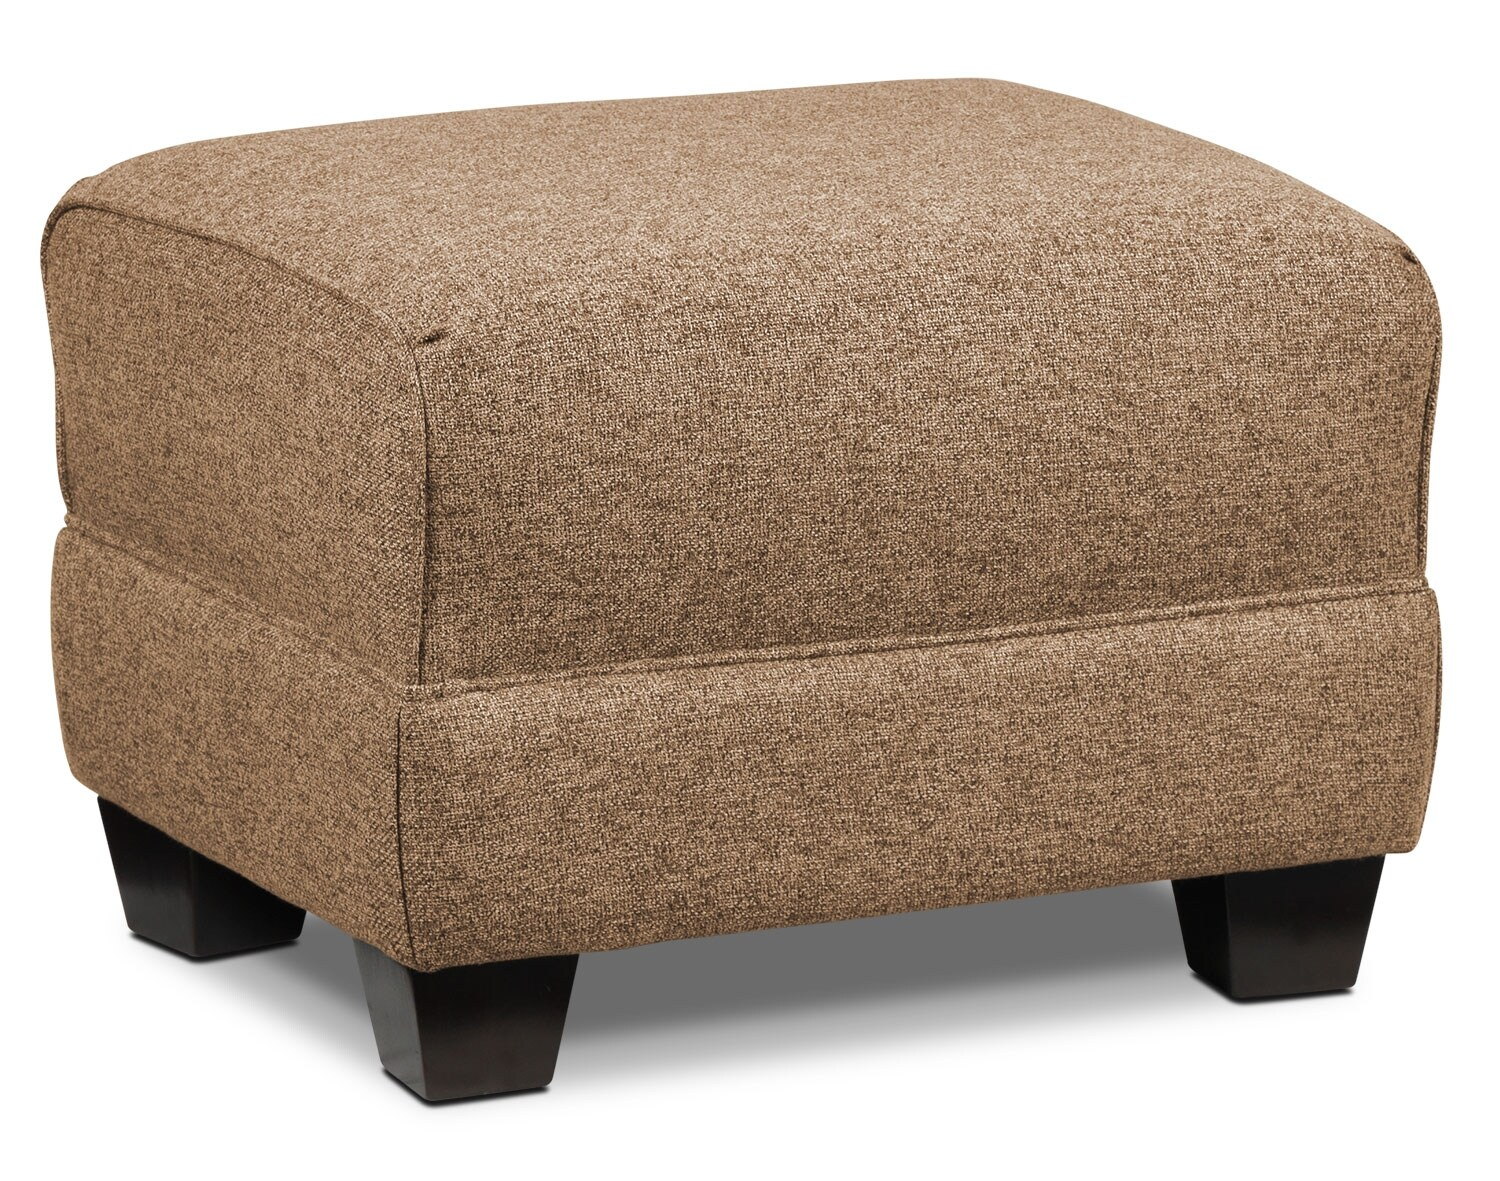 Living Room Furniture - Ashby Ottoman - Sand